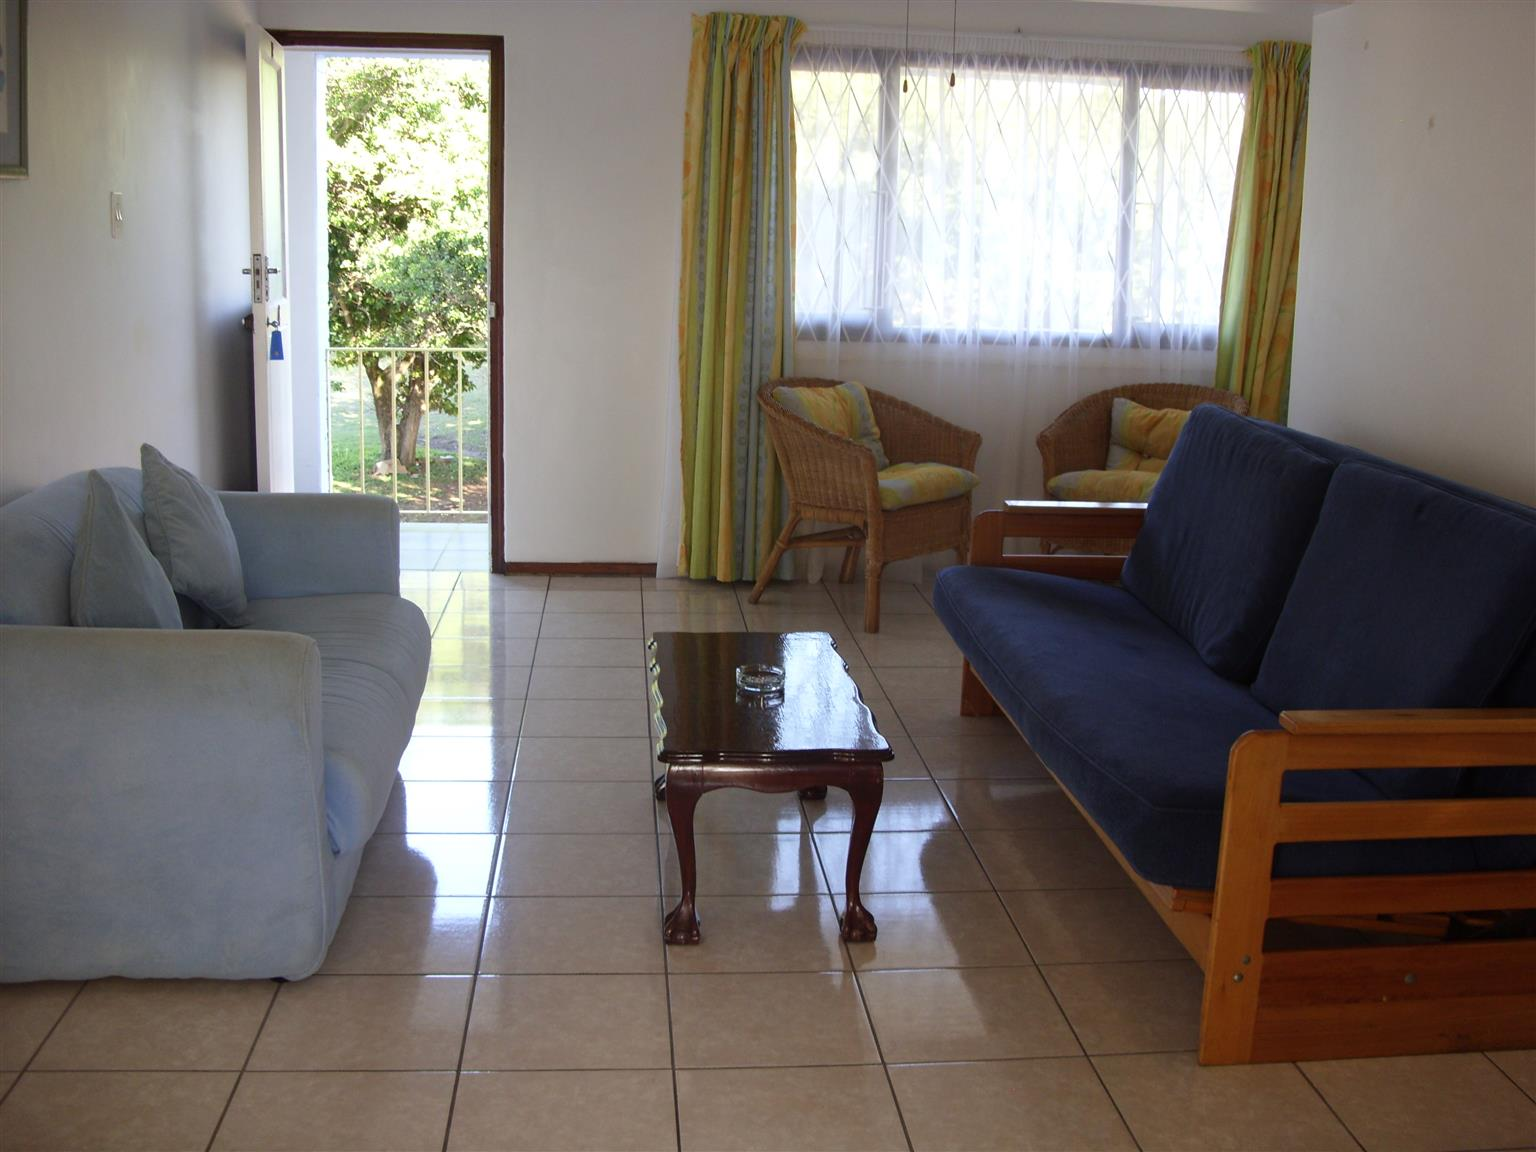 CONTRACTORS, REPS, EMPLOYEES - SHORT OR LONG TERM FURNISHED SELF-CATER 1, 2 AND 3 BEDROOM HOUSES AND FLATS TO RENT SHELLY BEACH, UVONGO, ST MICHAELS-ON-SEA, UMTENTWENI